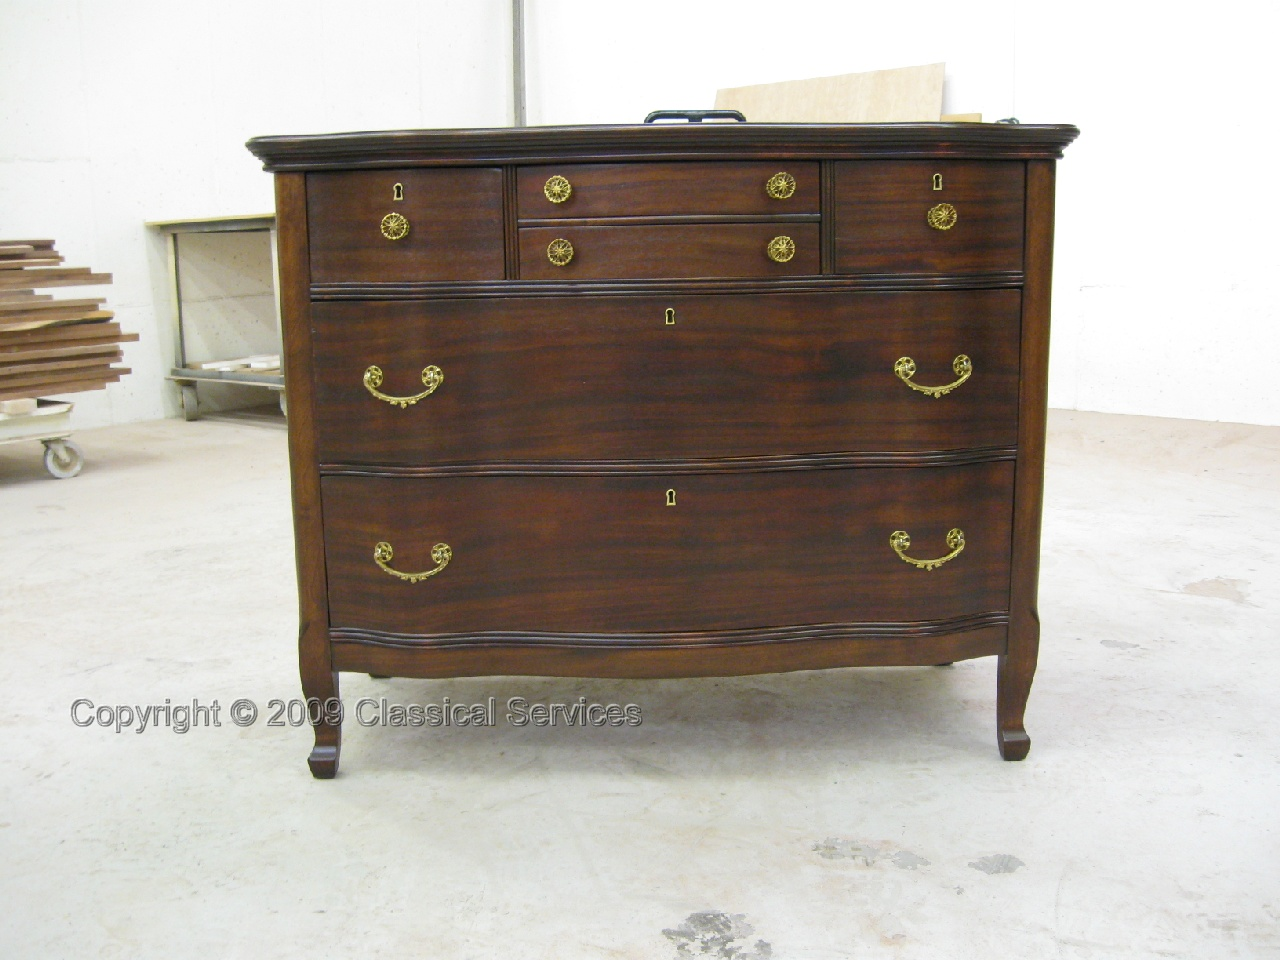 Superb img of furniture repair refinishing washington mo with #5E4130 color and 1280x960 pixels